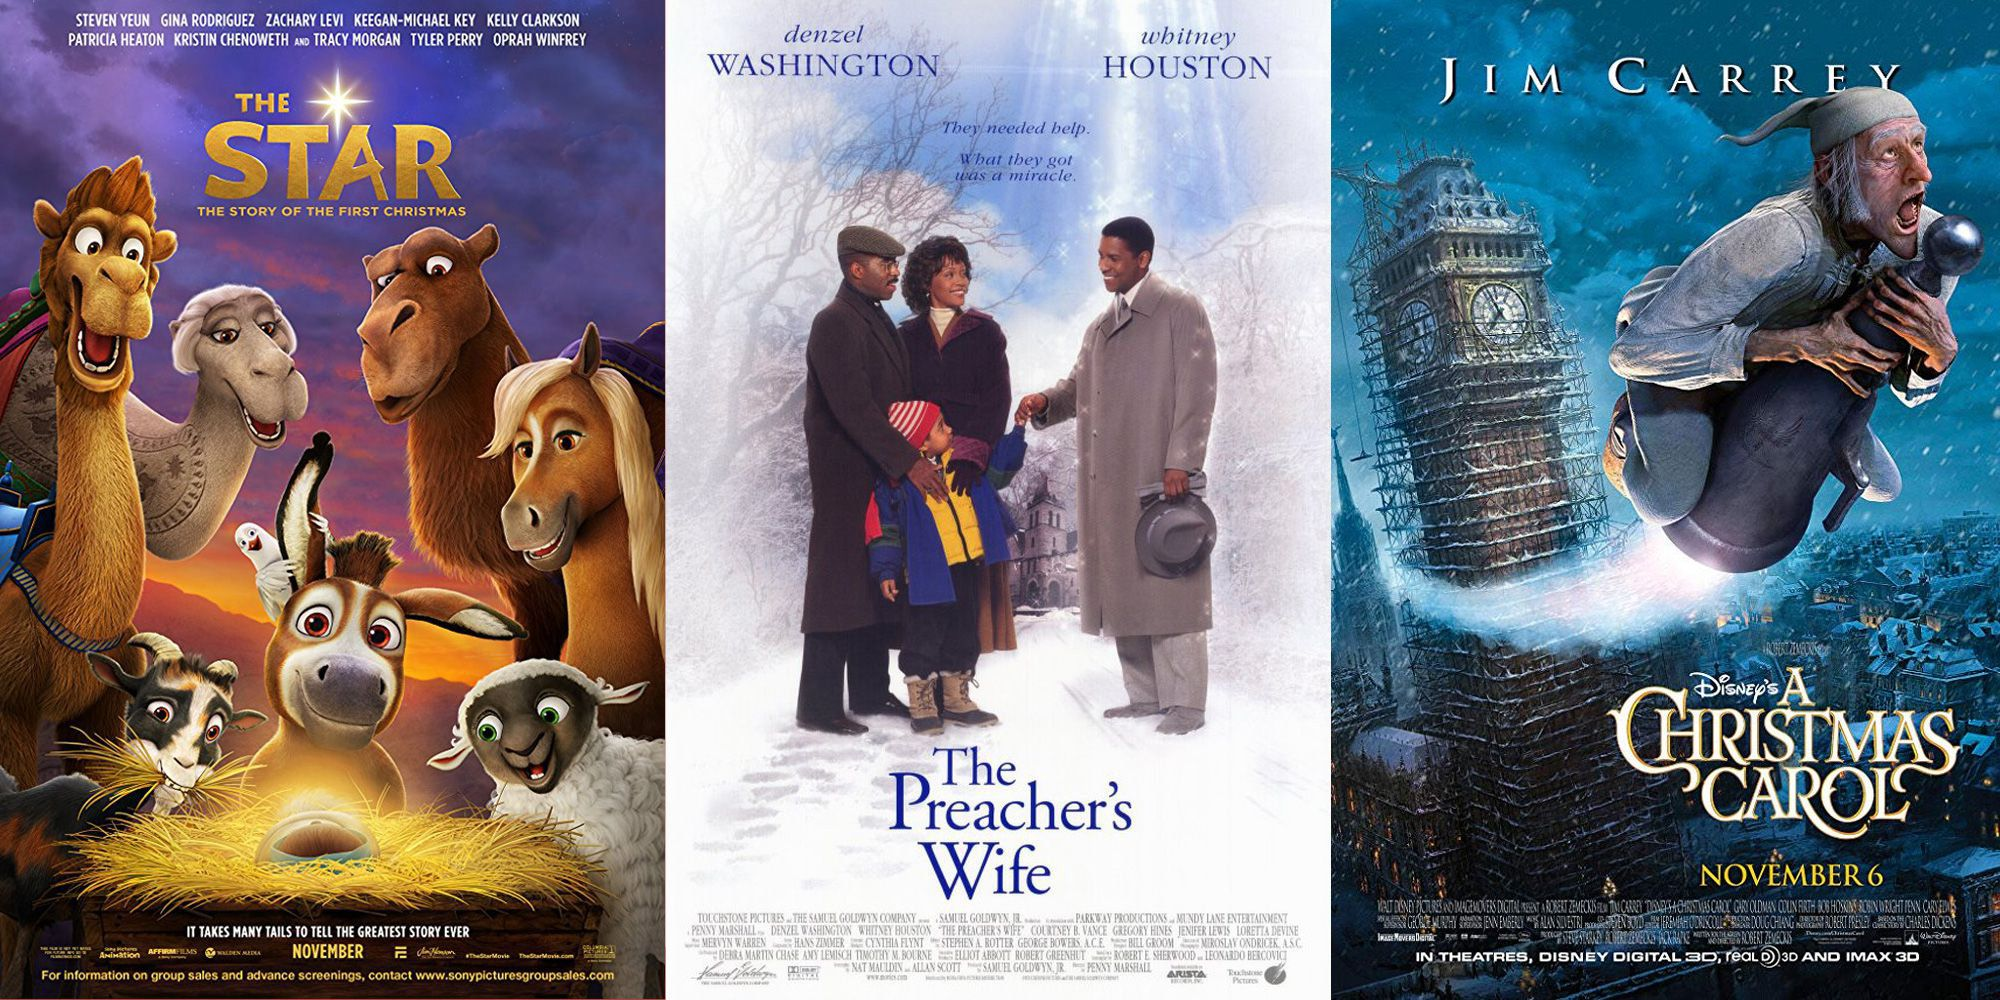 20 Christian Christmas Movies - Best Holiday Films for Christians